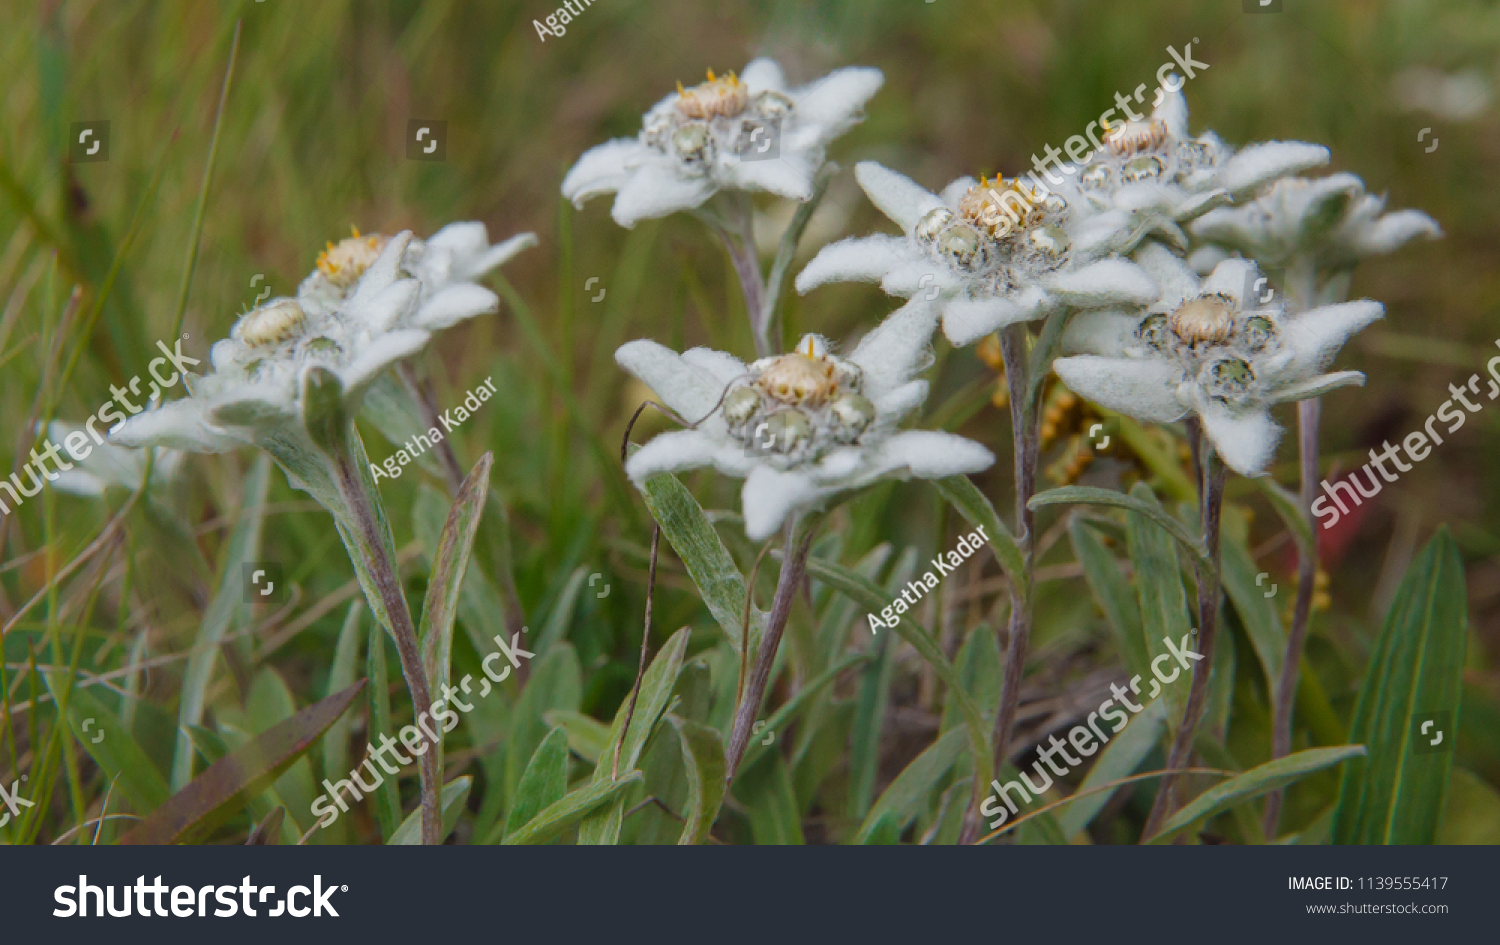 White Alpine Flower Edelweiss Stock Photo Edit Now 1139555417